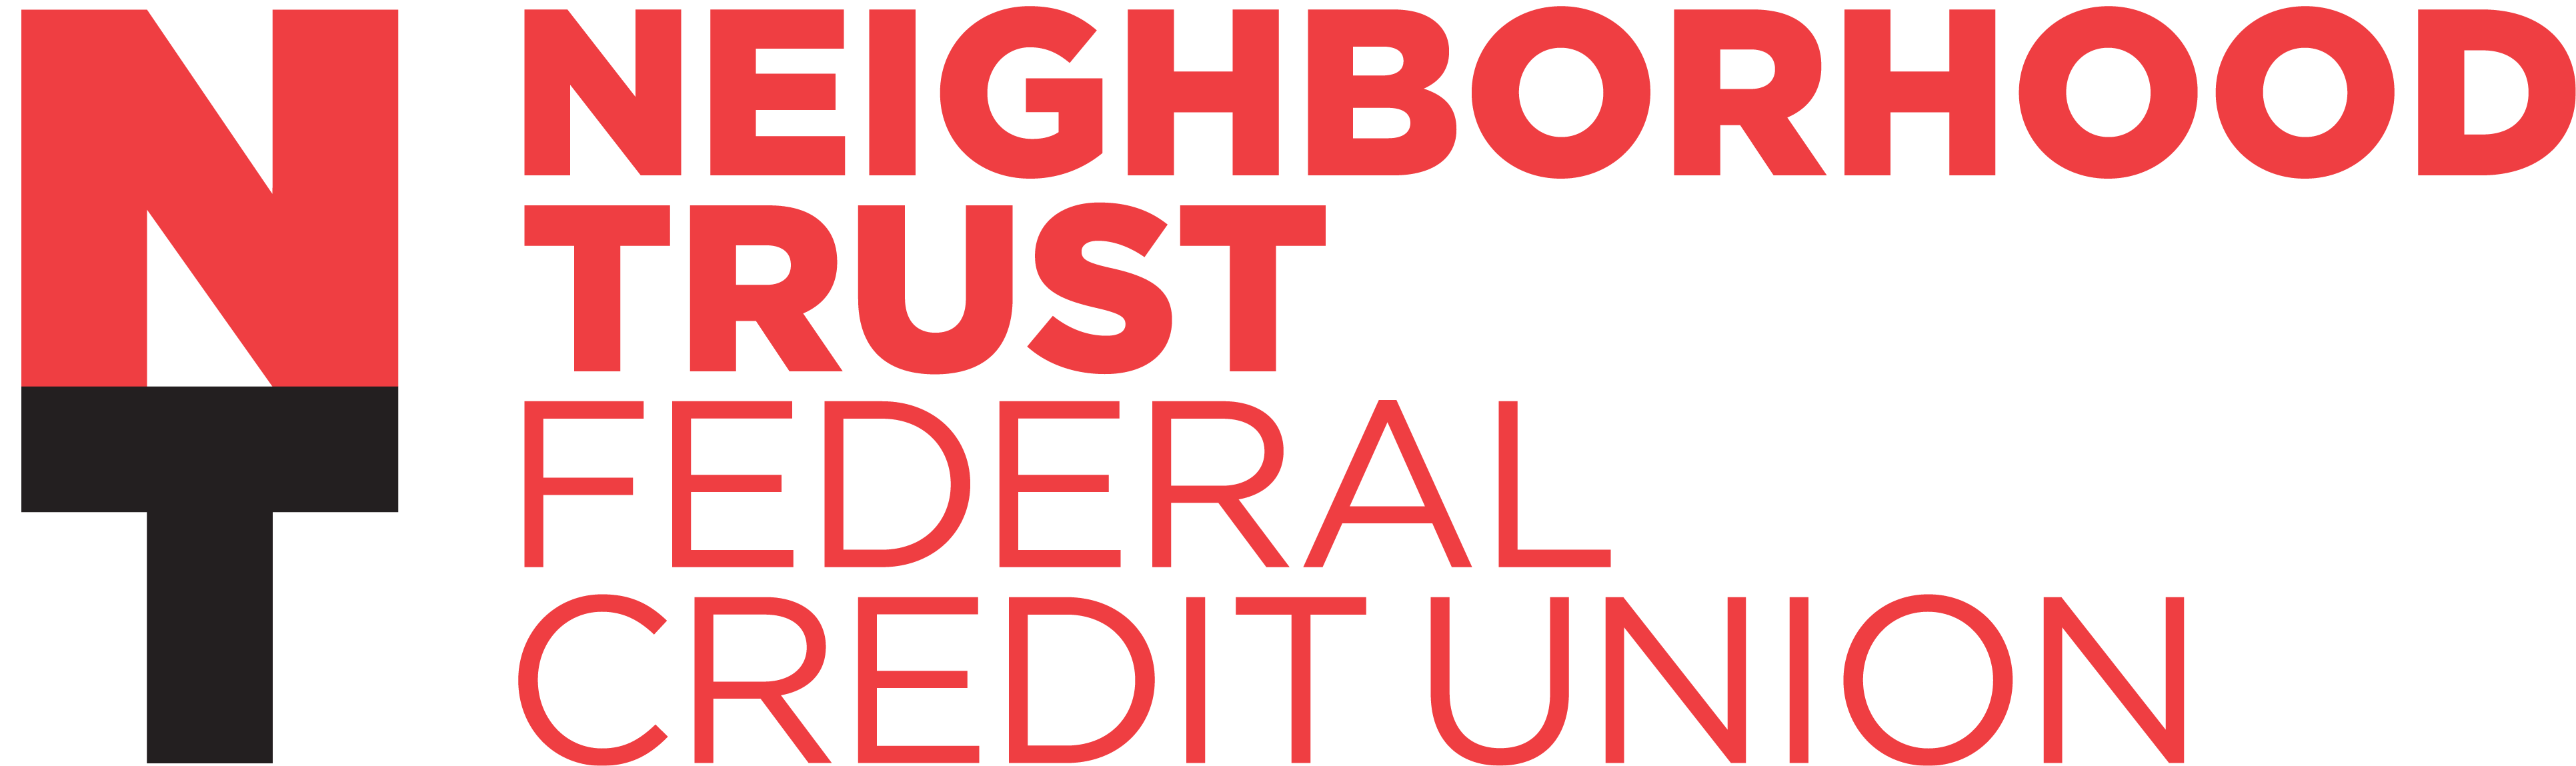 Neighborhood Trust Federal Credit Union